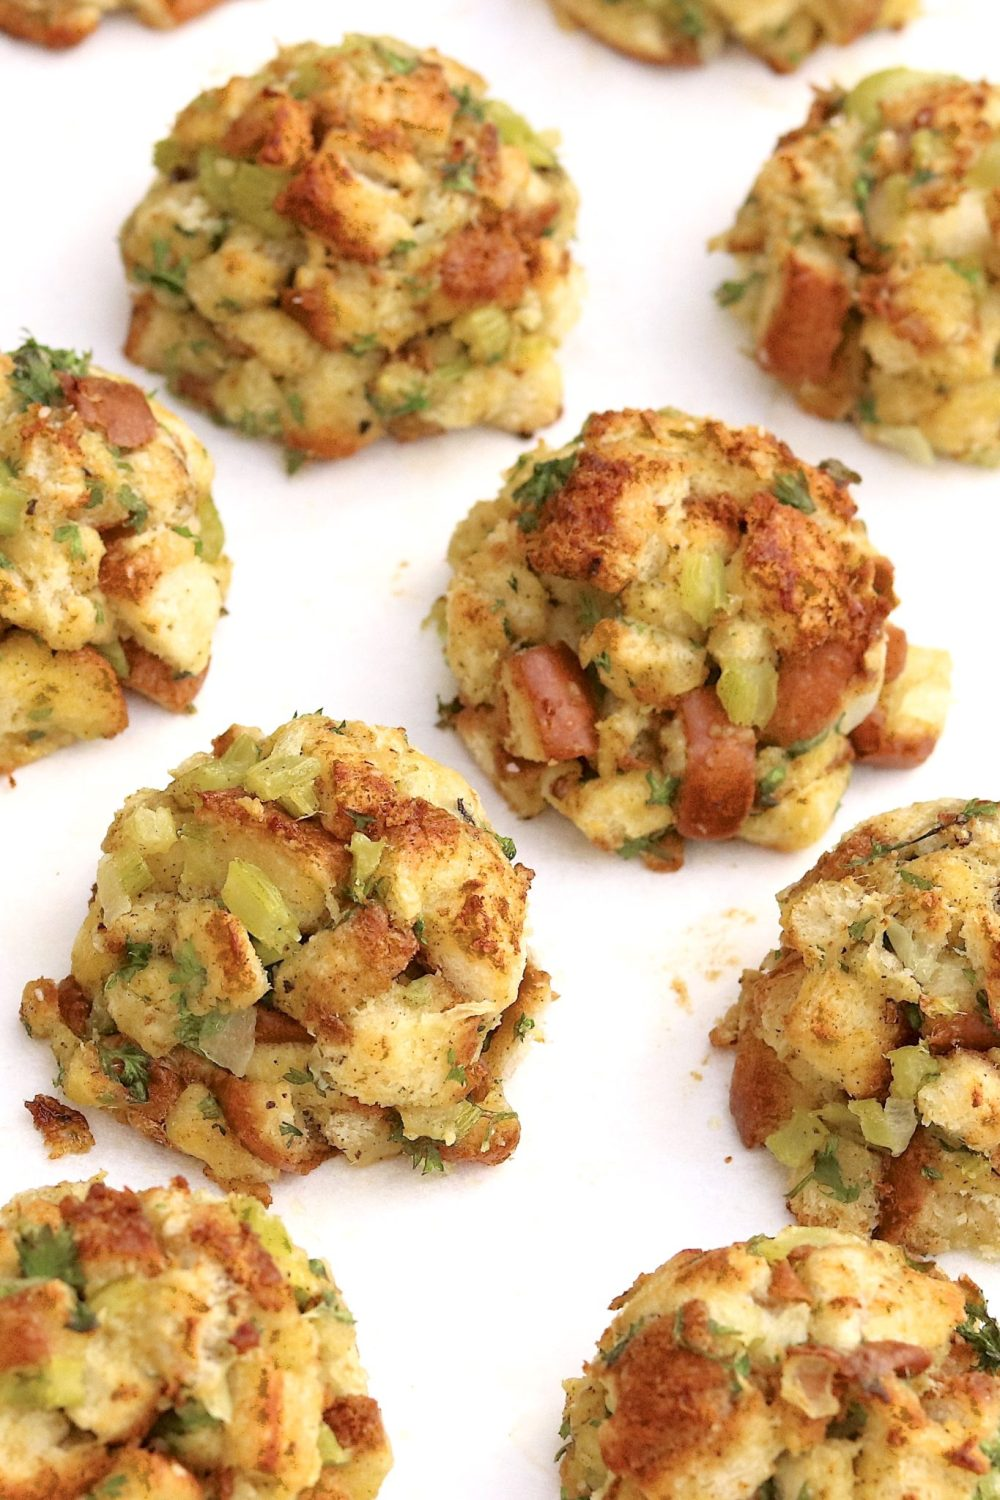 Stuffing Balls  --  Clever, portion-controlled, and a surefire hit on a holiday table or alongside a variety of poultry and pork dishes throughout the year. They're easy to make for any size crowd and offer prep-ahead convenience.